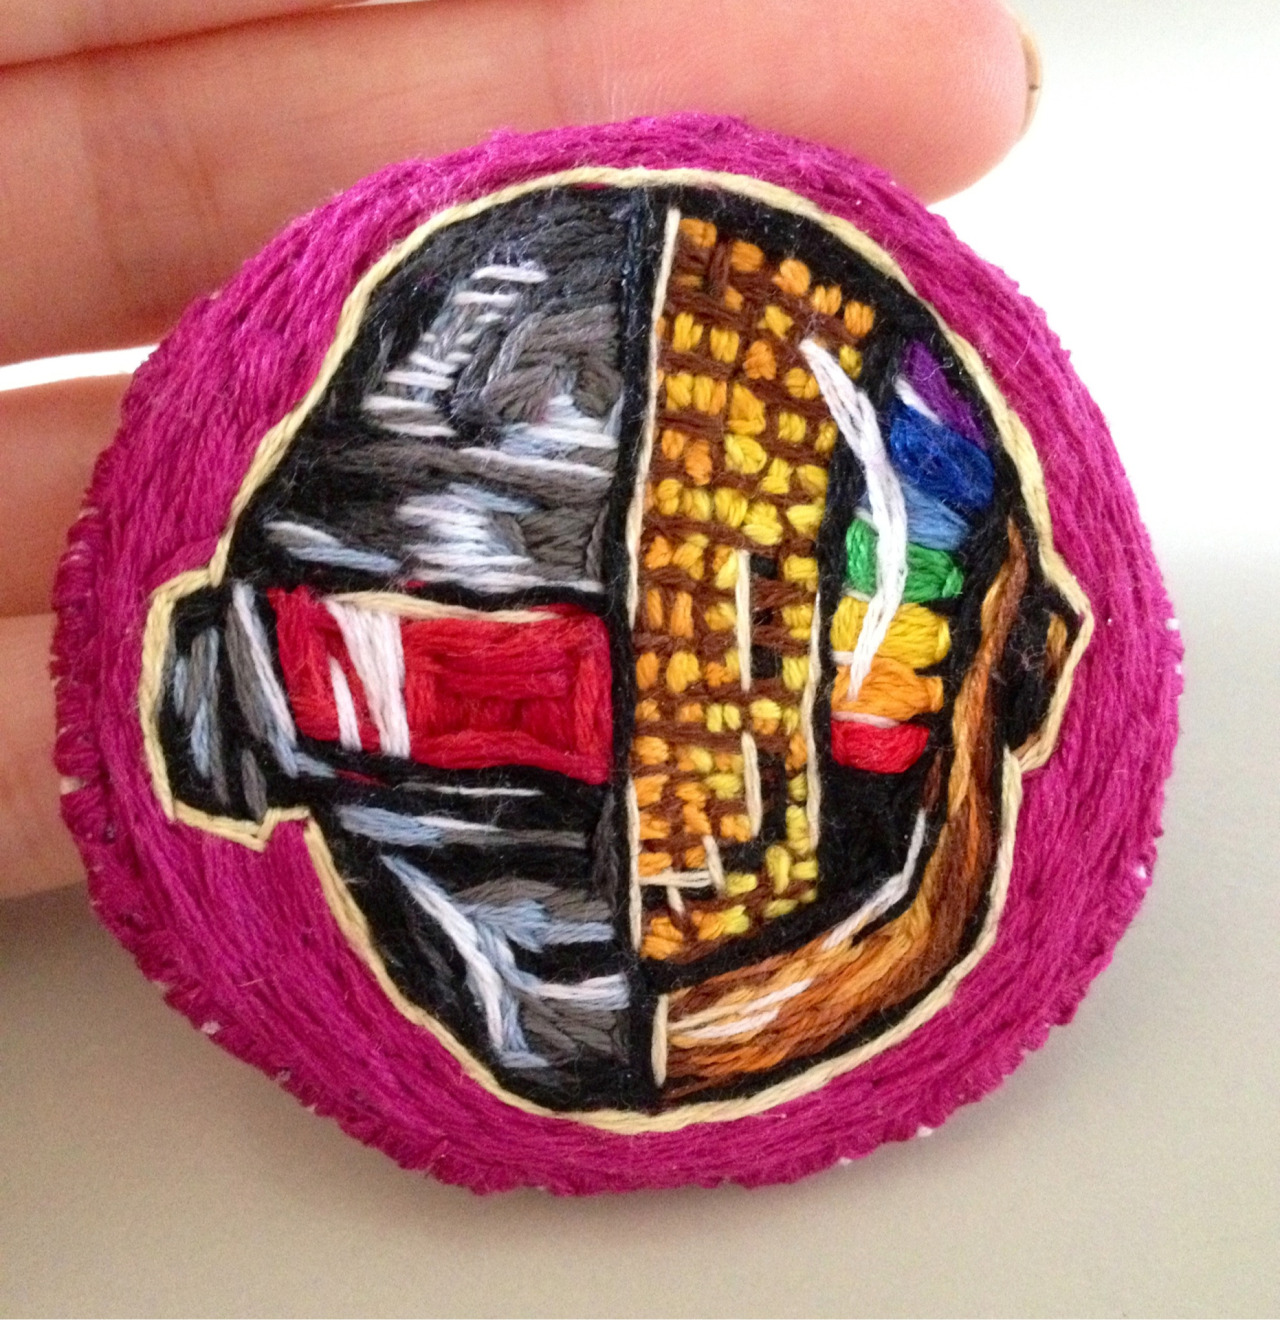 Been getting back into stitching little pins again, fun stuff! Here's a Daft Punk one I made for a friend :)